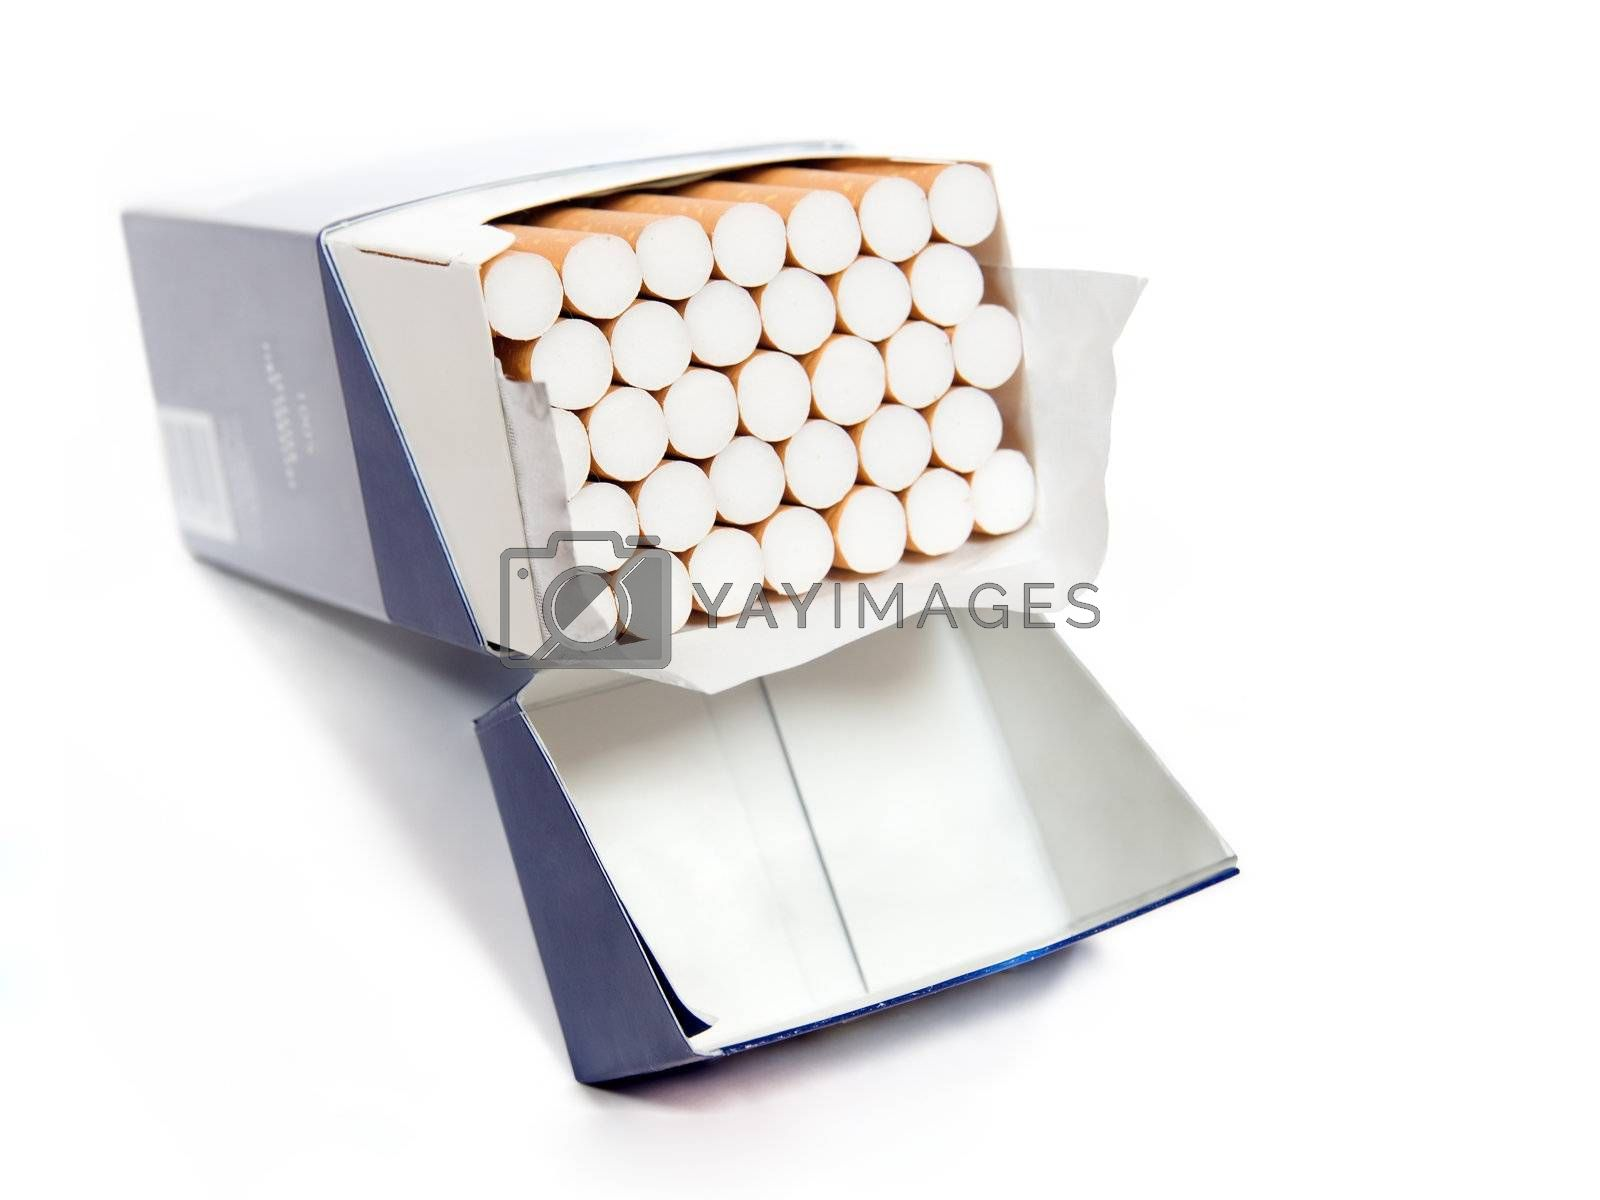 Big pack of cigarettes isolated on white background